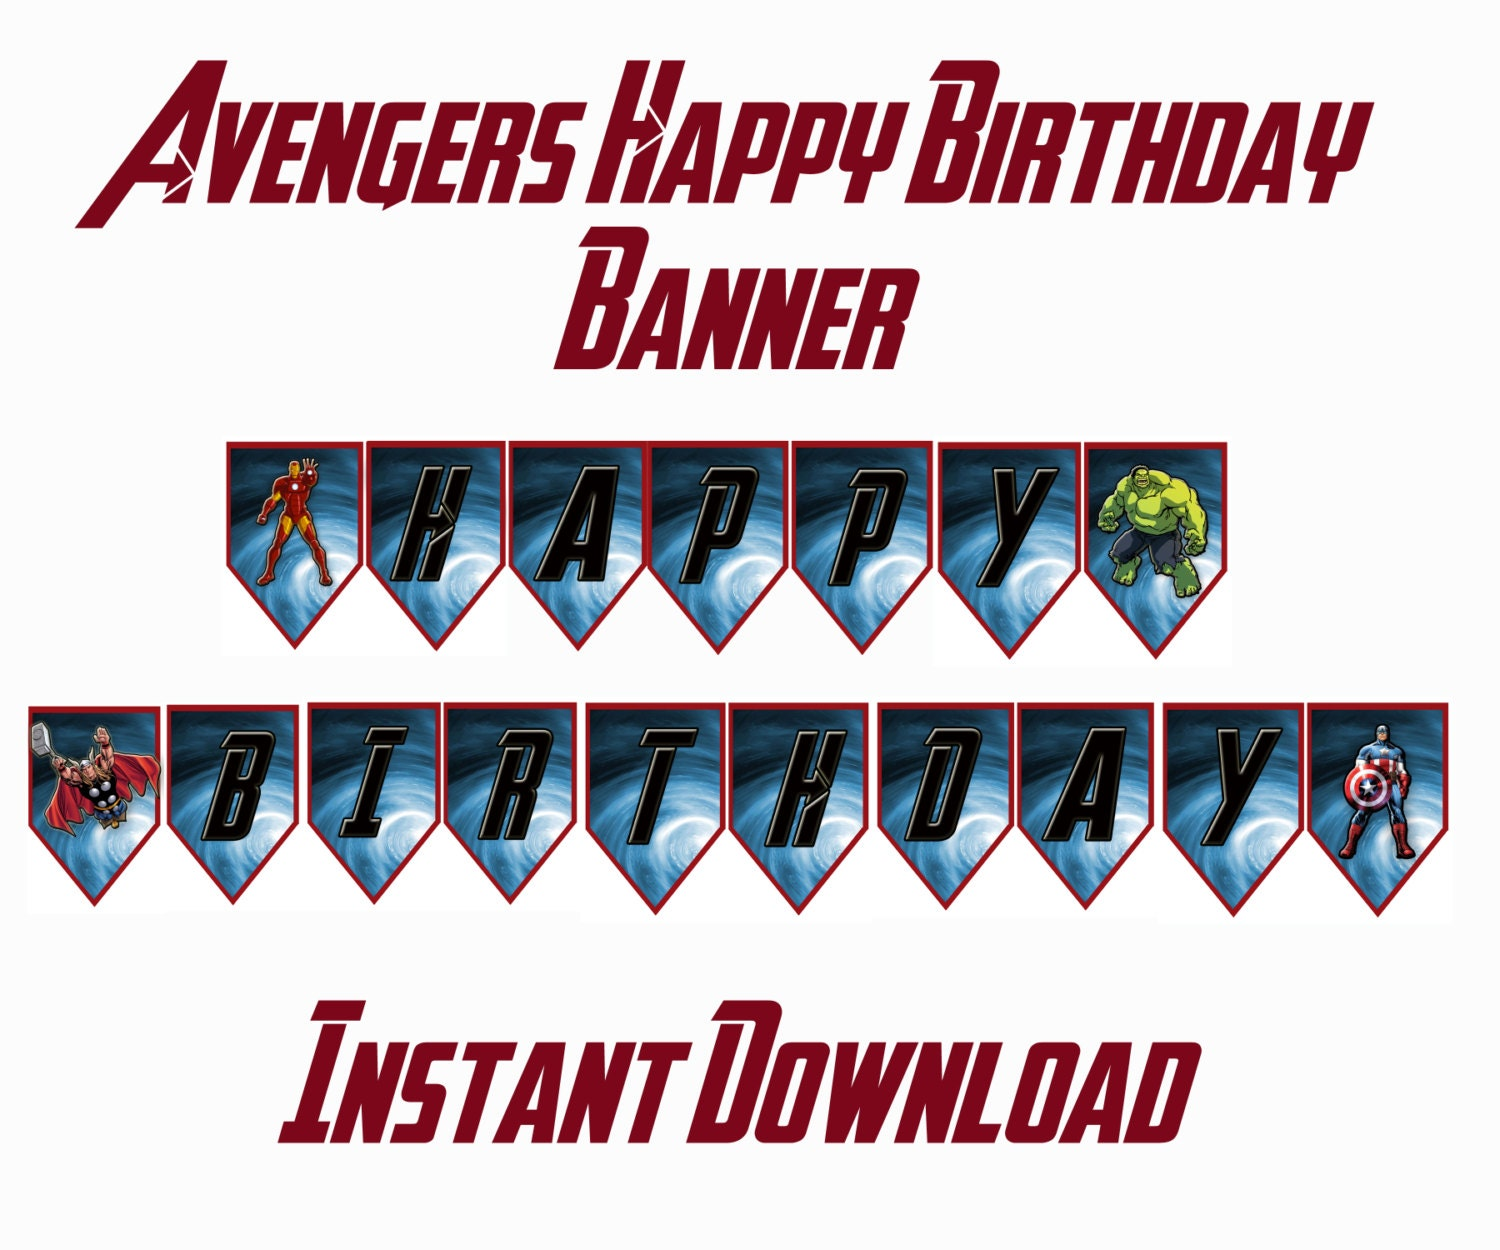 Instant Download Avengers Happy Birthday Banner By